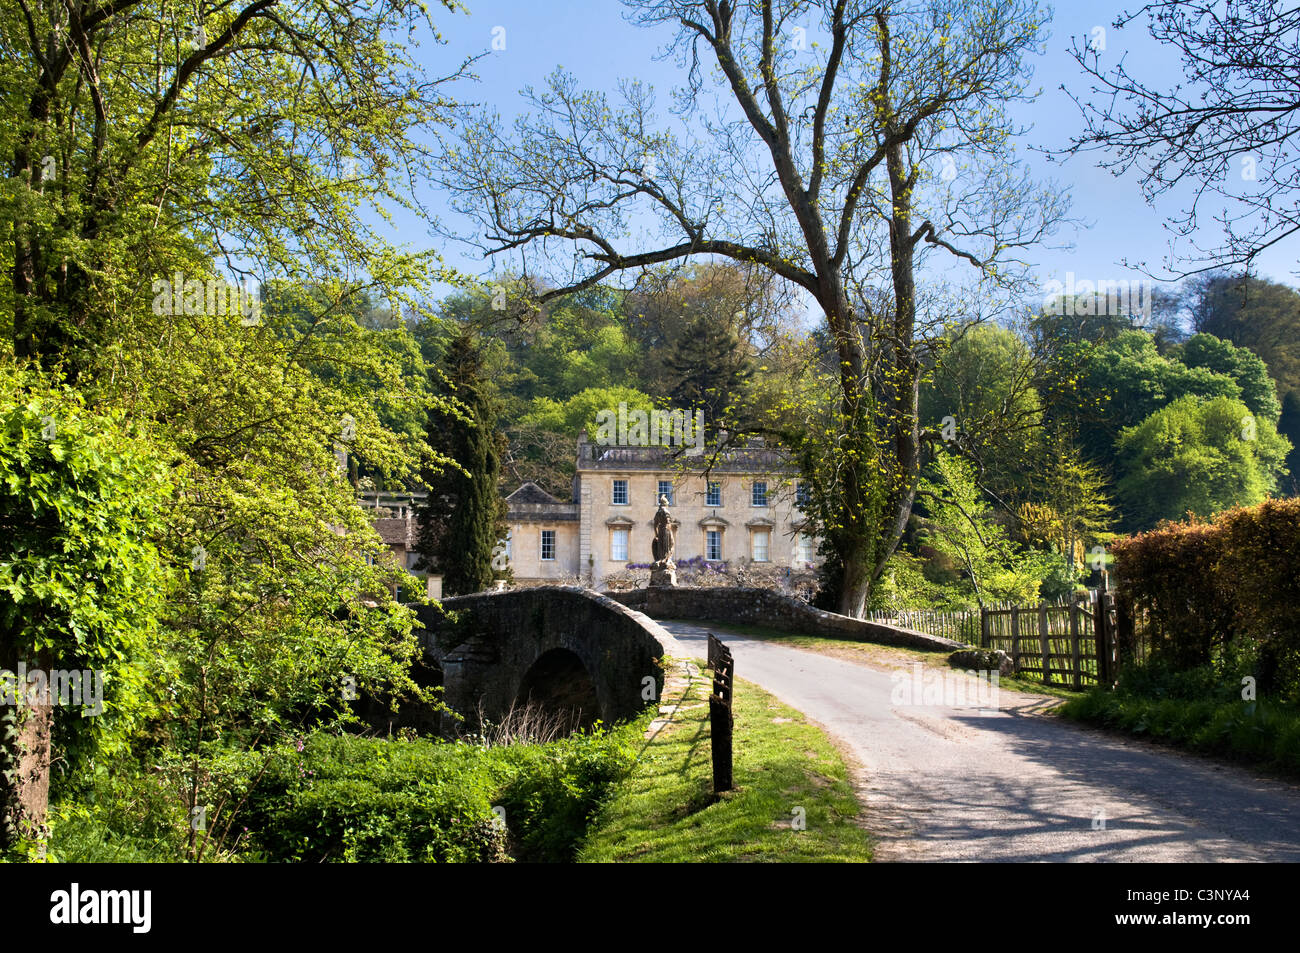 Picturesque scene at Iford of single track road, bridge and Iford manor, taken at Iford, Bradford on avon on fine Stock Photo